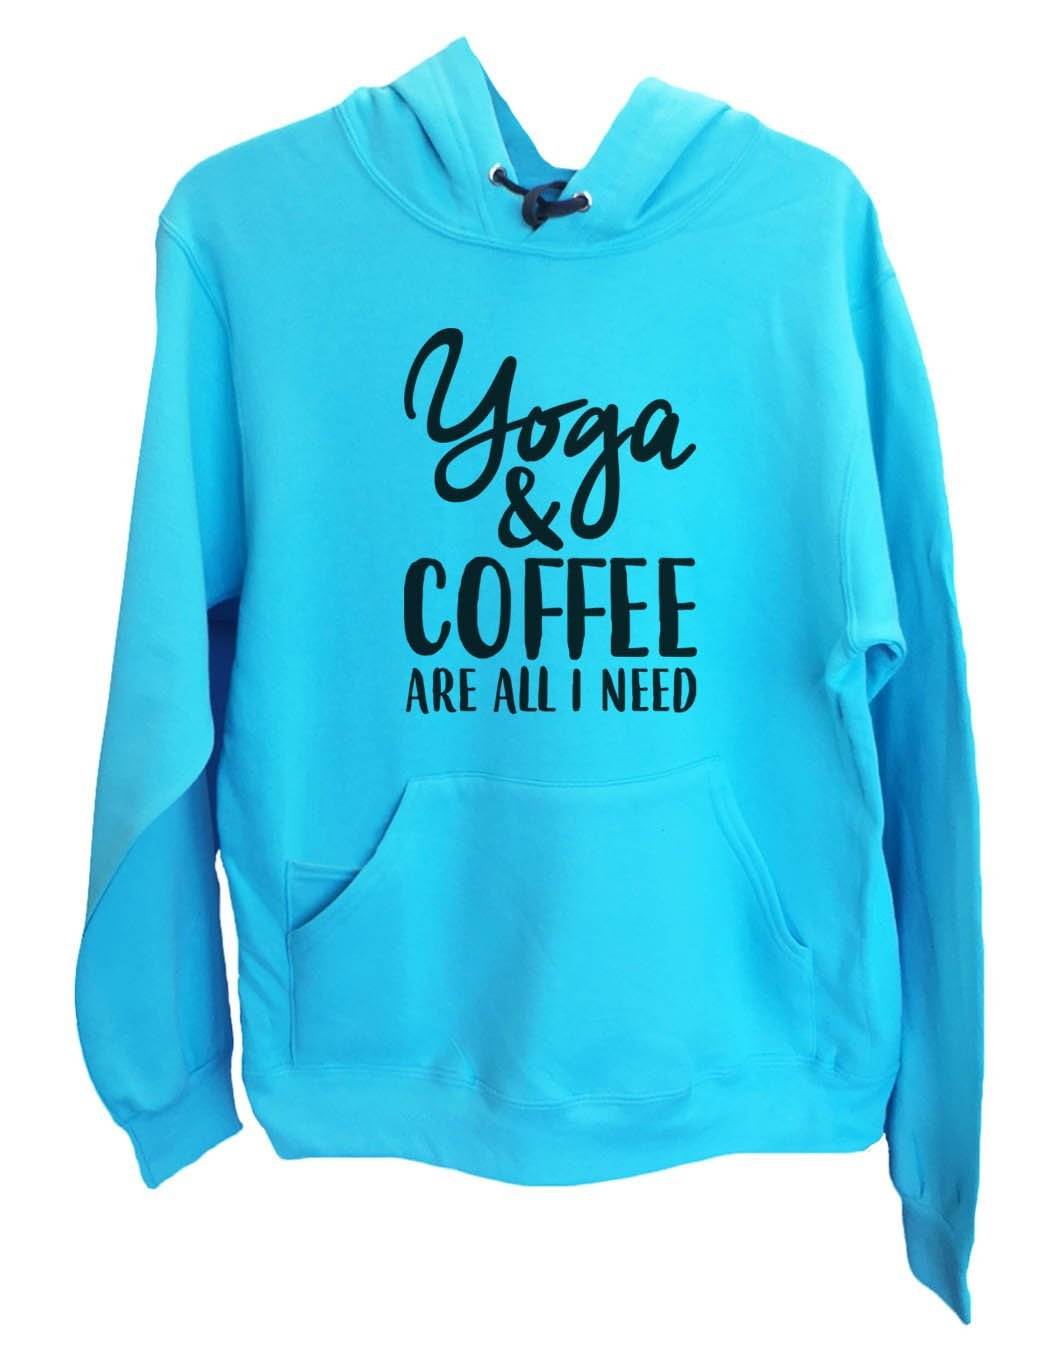 UNISEX HOODIE - Yoga & Coffee Are All I Need - FUNNY MENS AND WOMENS HOODED SWEATSHIRTS - 2174 Funny Shirt